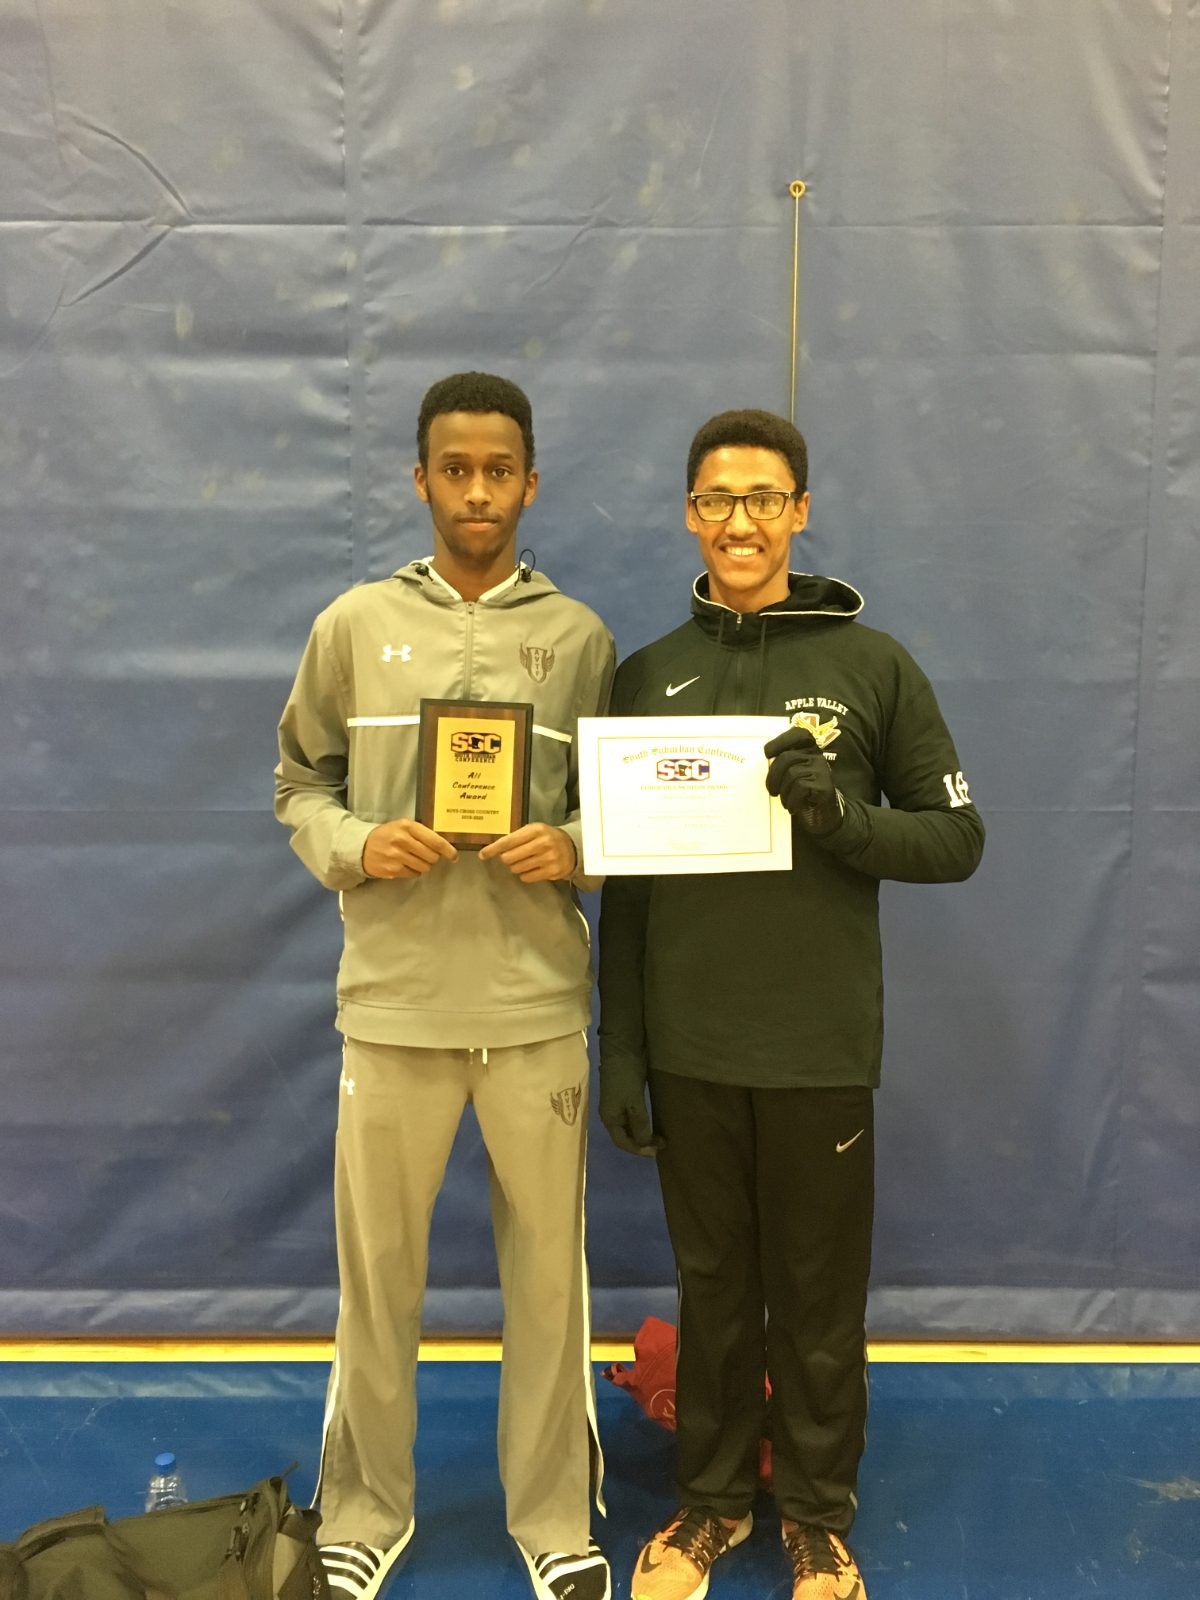 Khalif finishes 10th overall for Eagles at conference meet